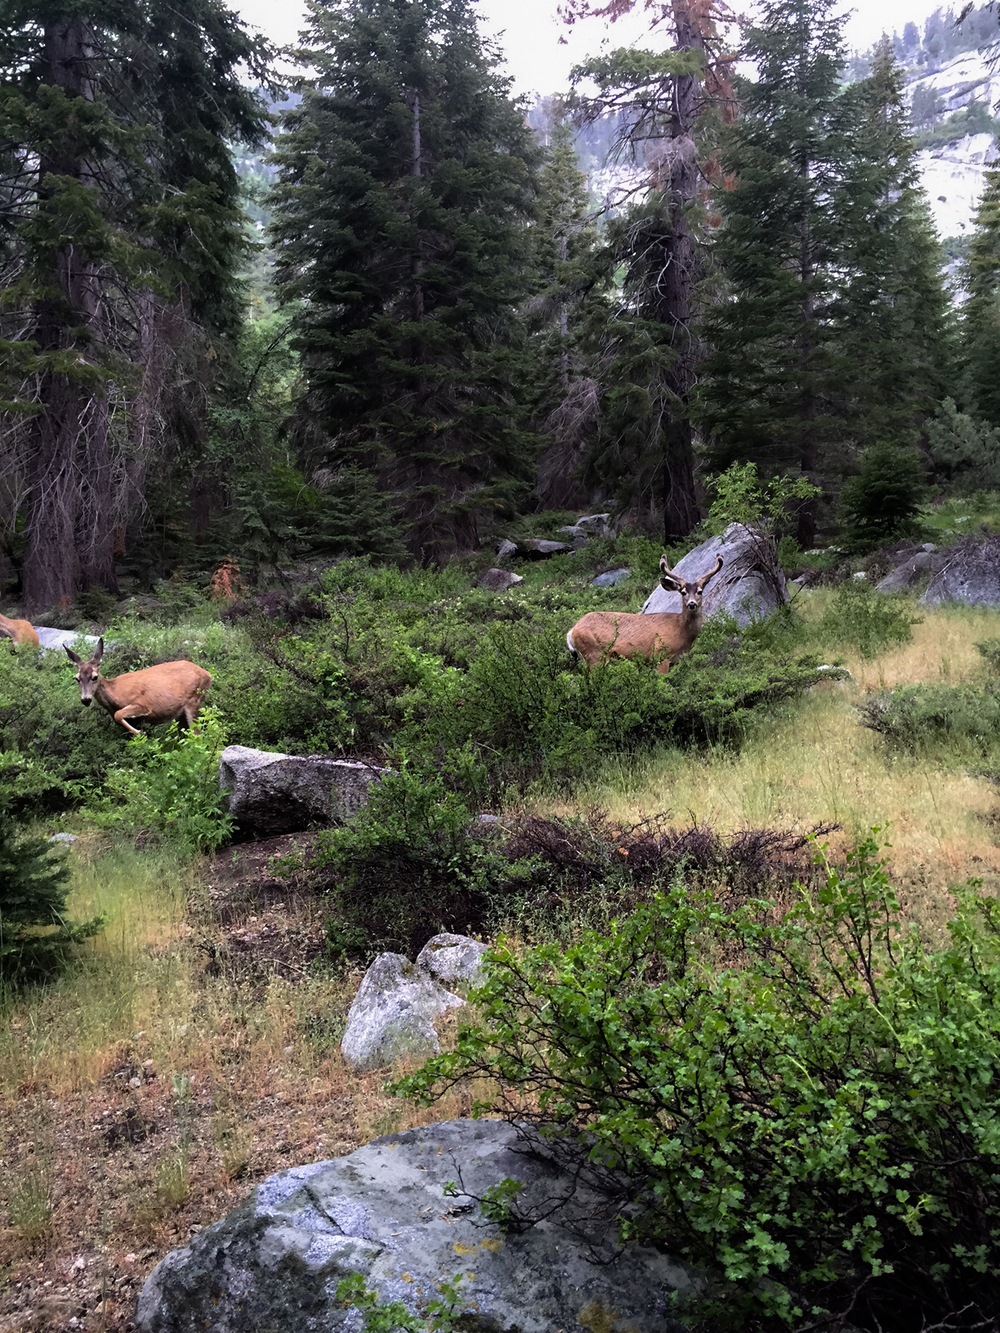 Several of the dozens of deer that call Paradise Valley home. KIngs Canyon National Park, California